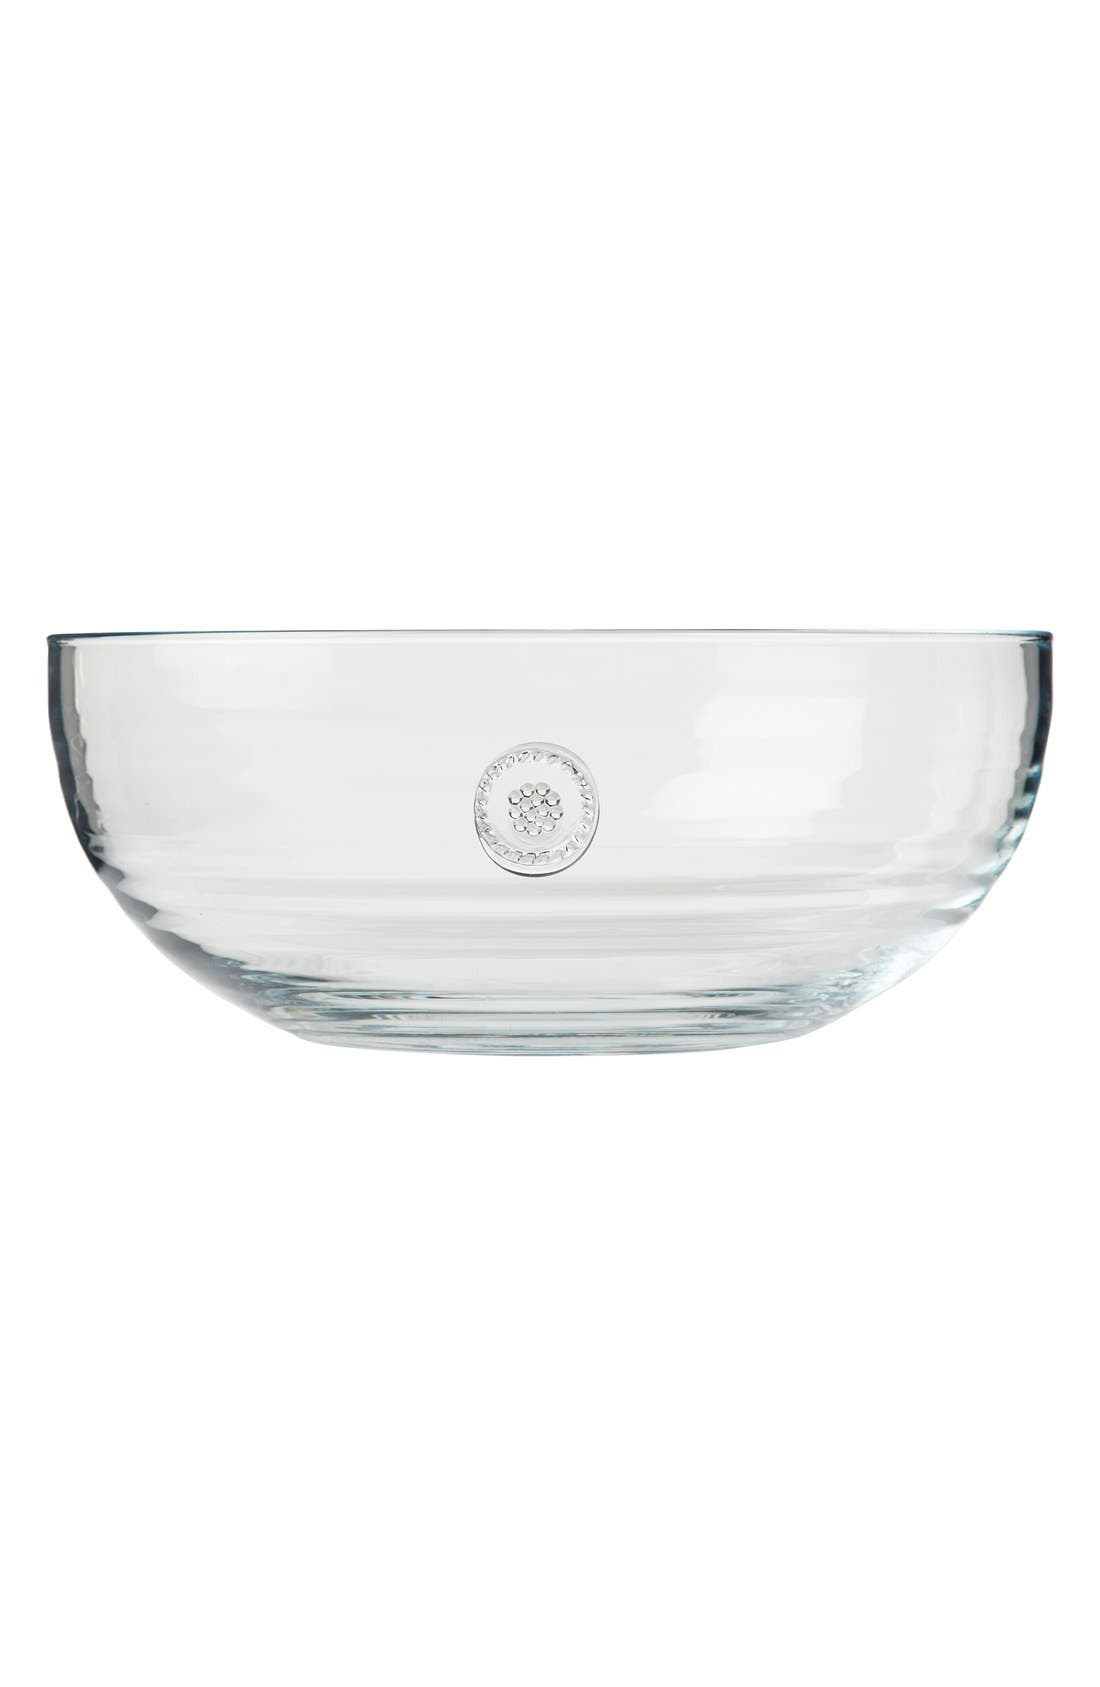 Juliska Berry & Thread Large Glass Bowl